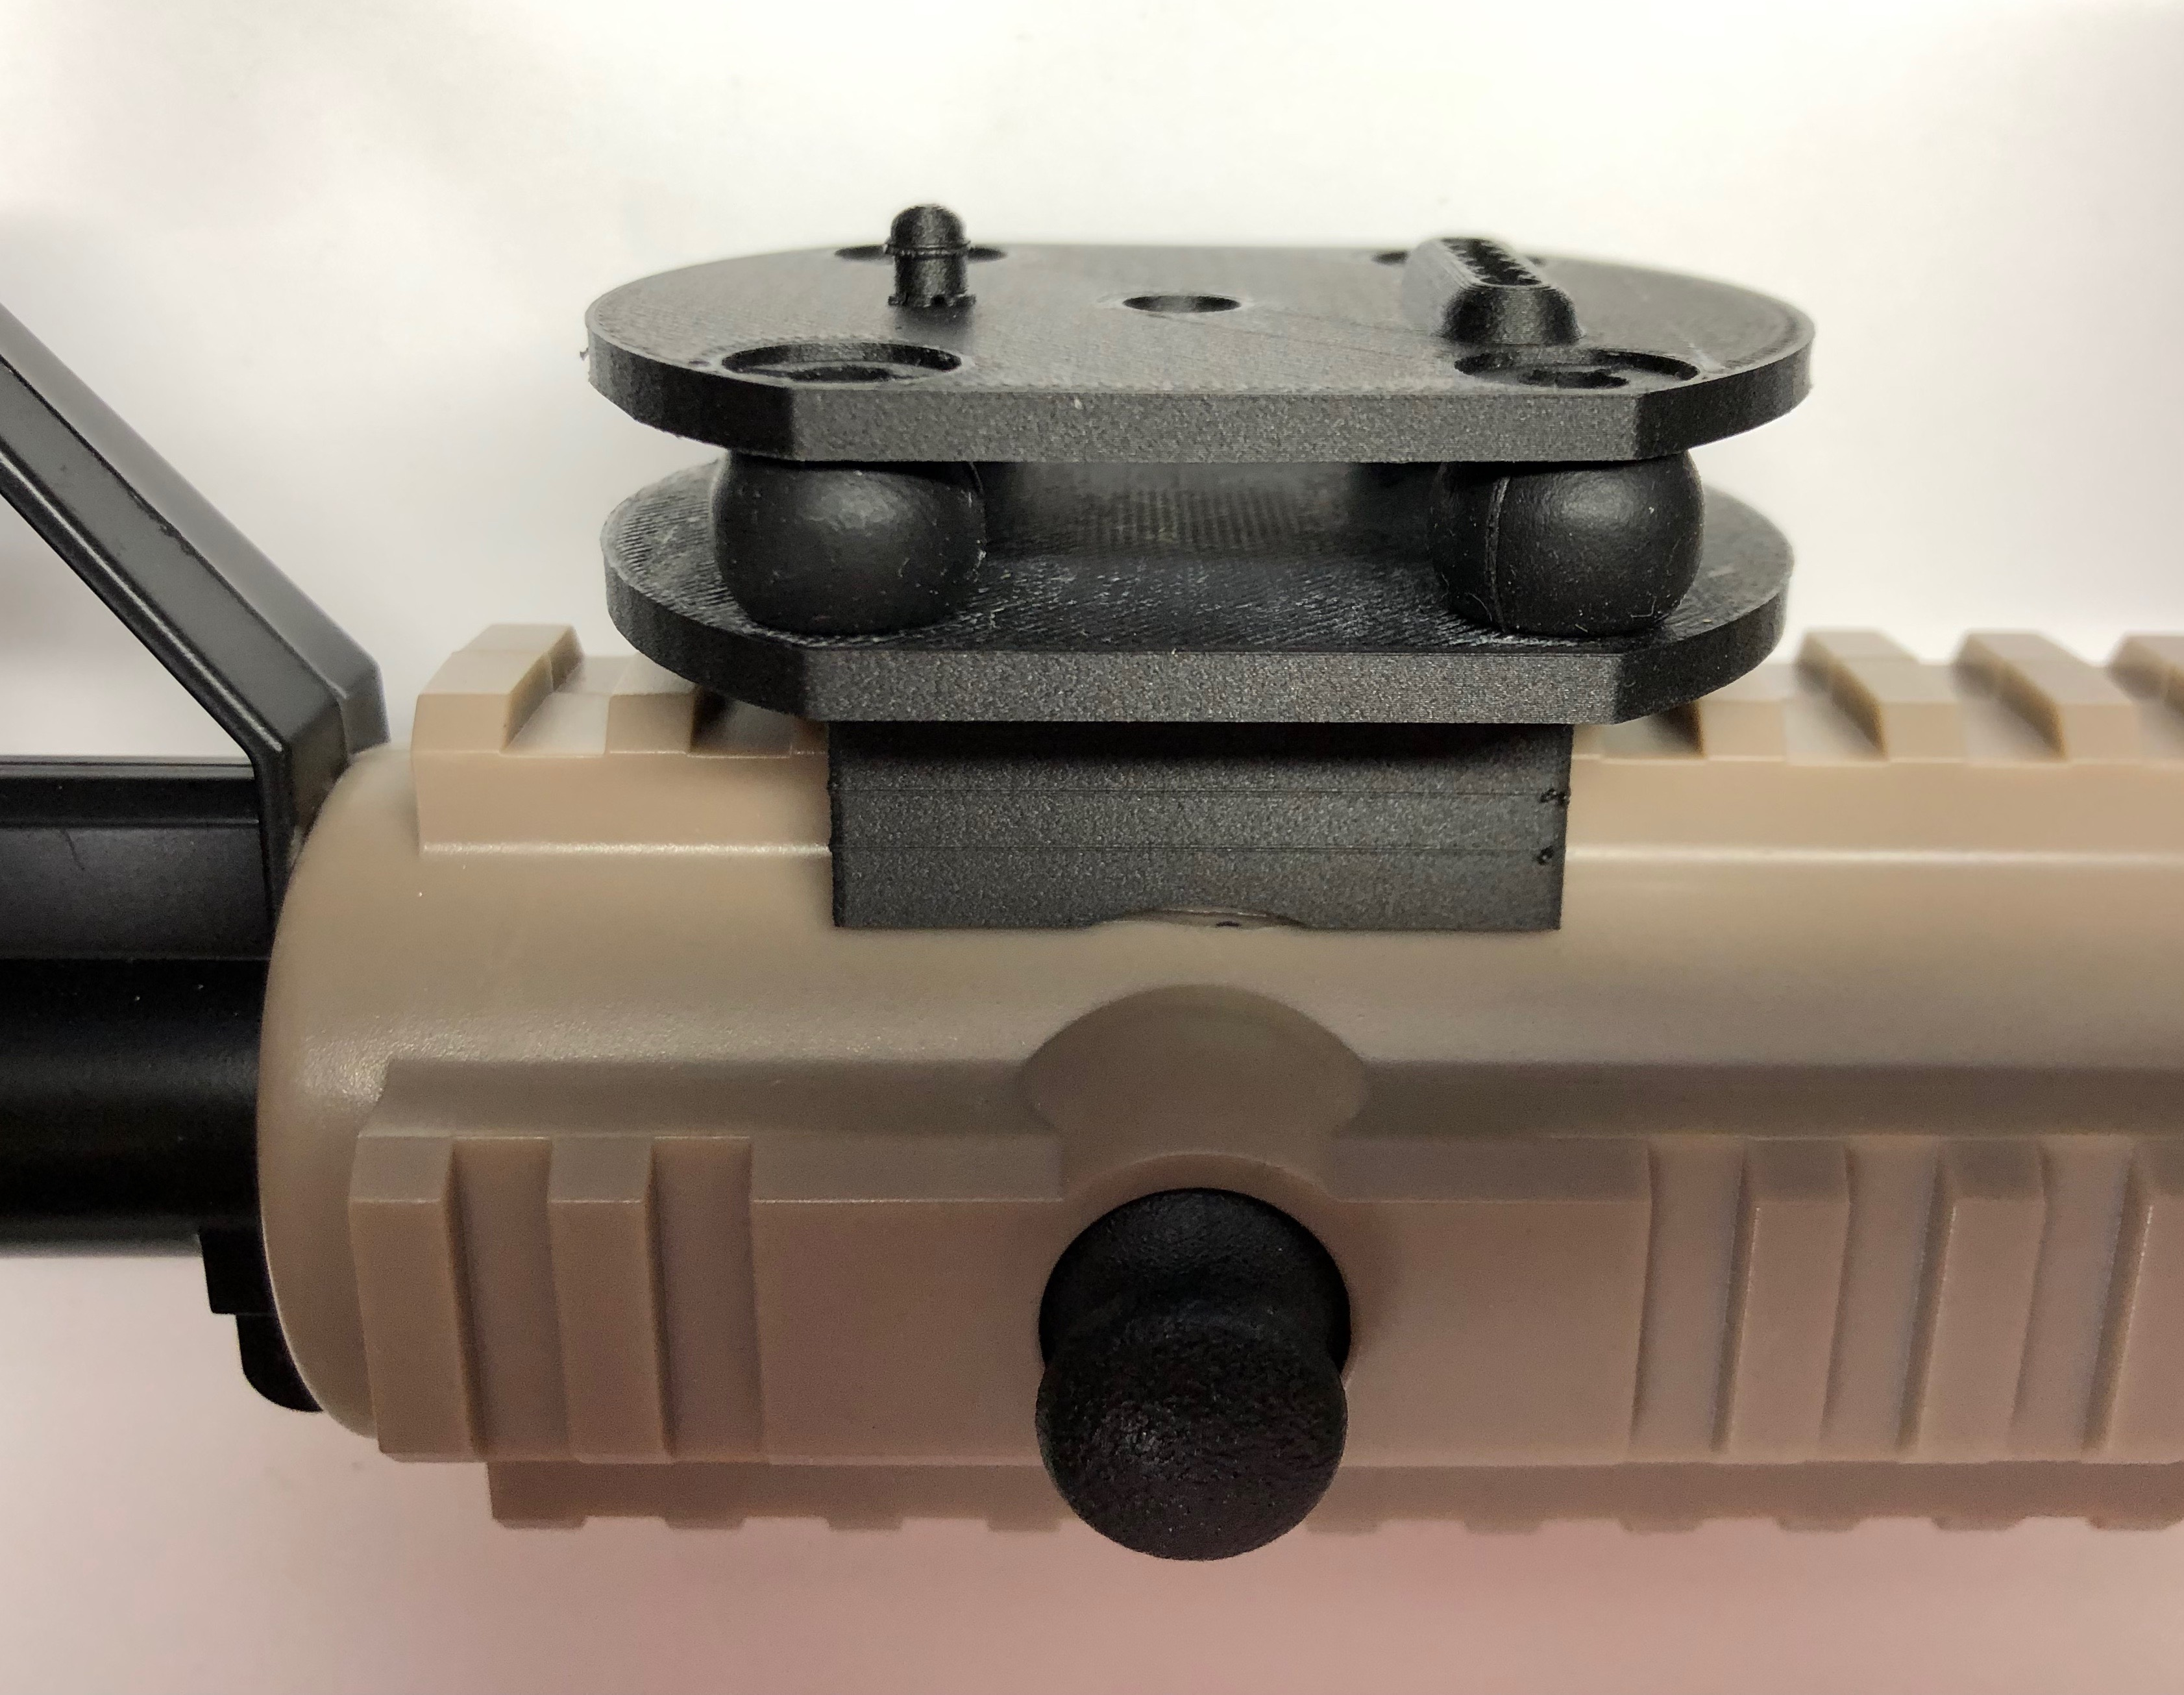 Vive Tracker VR Rifle Project